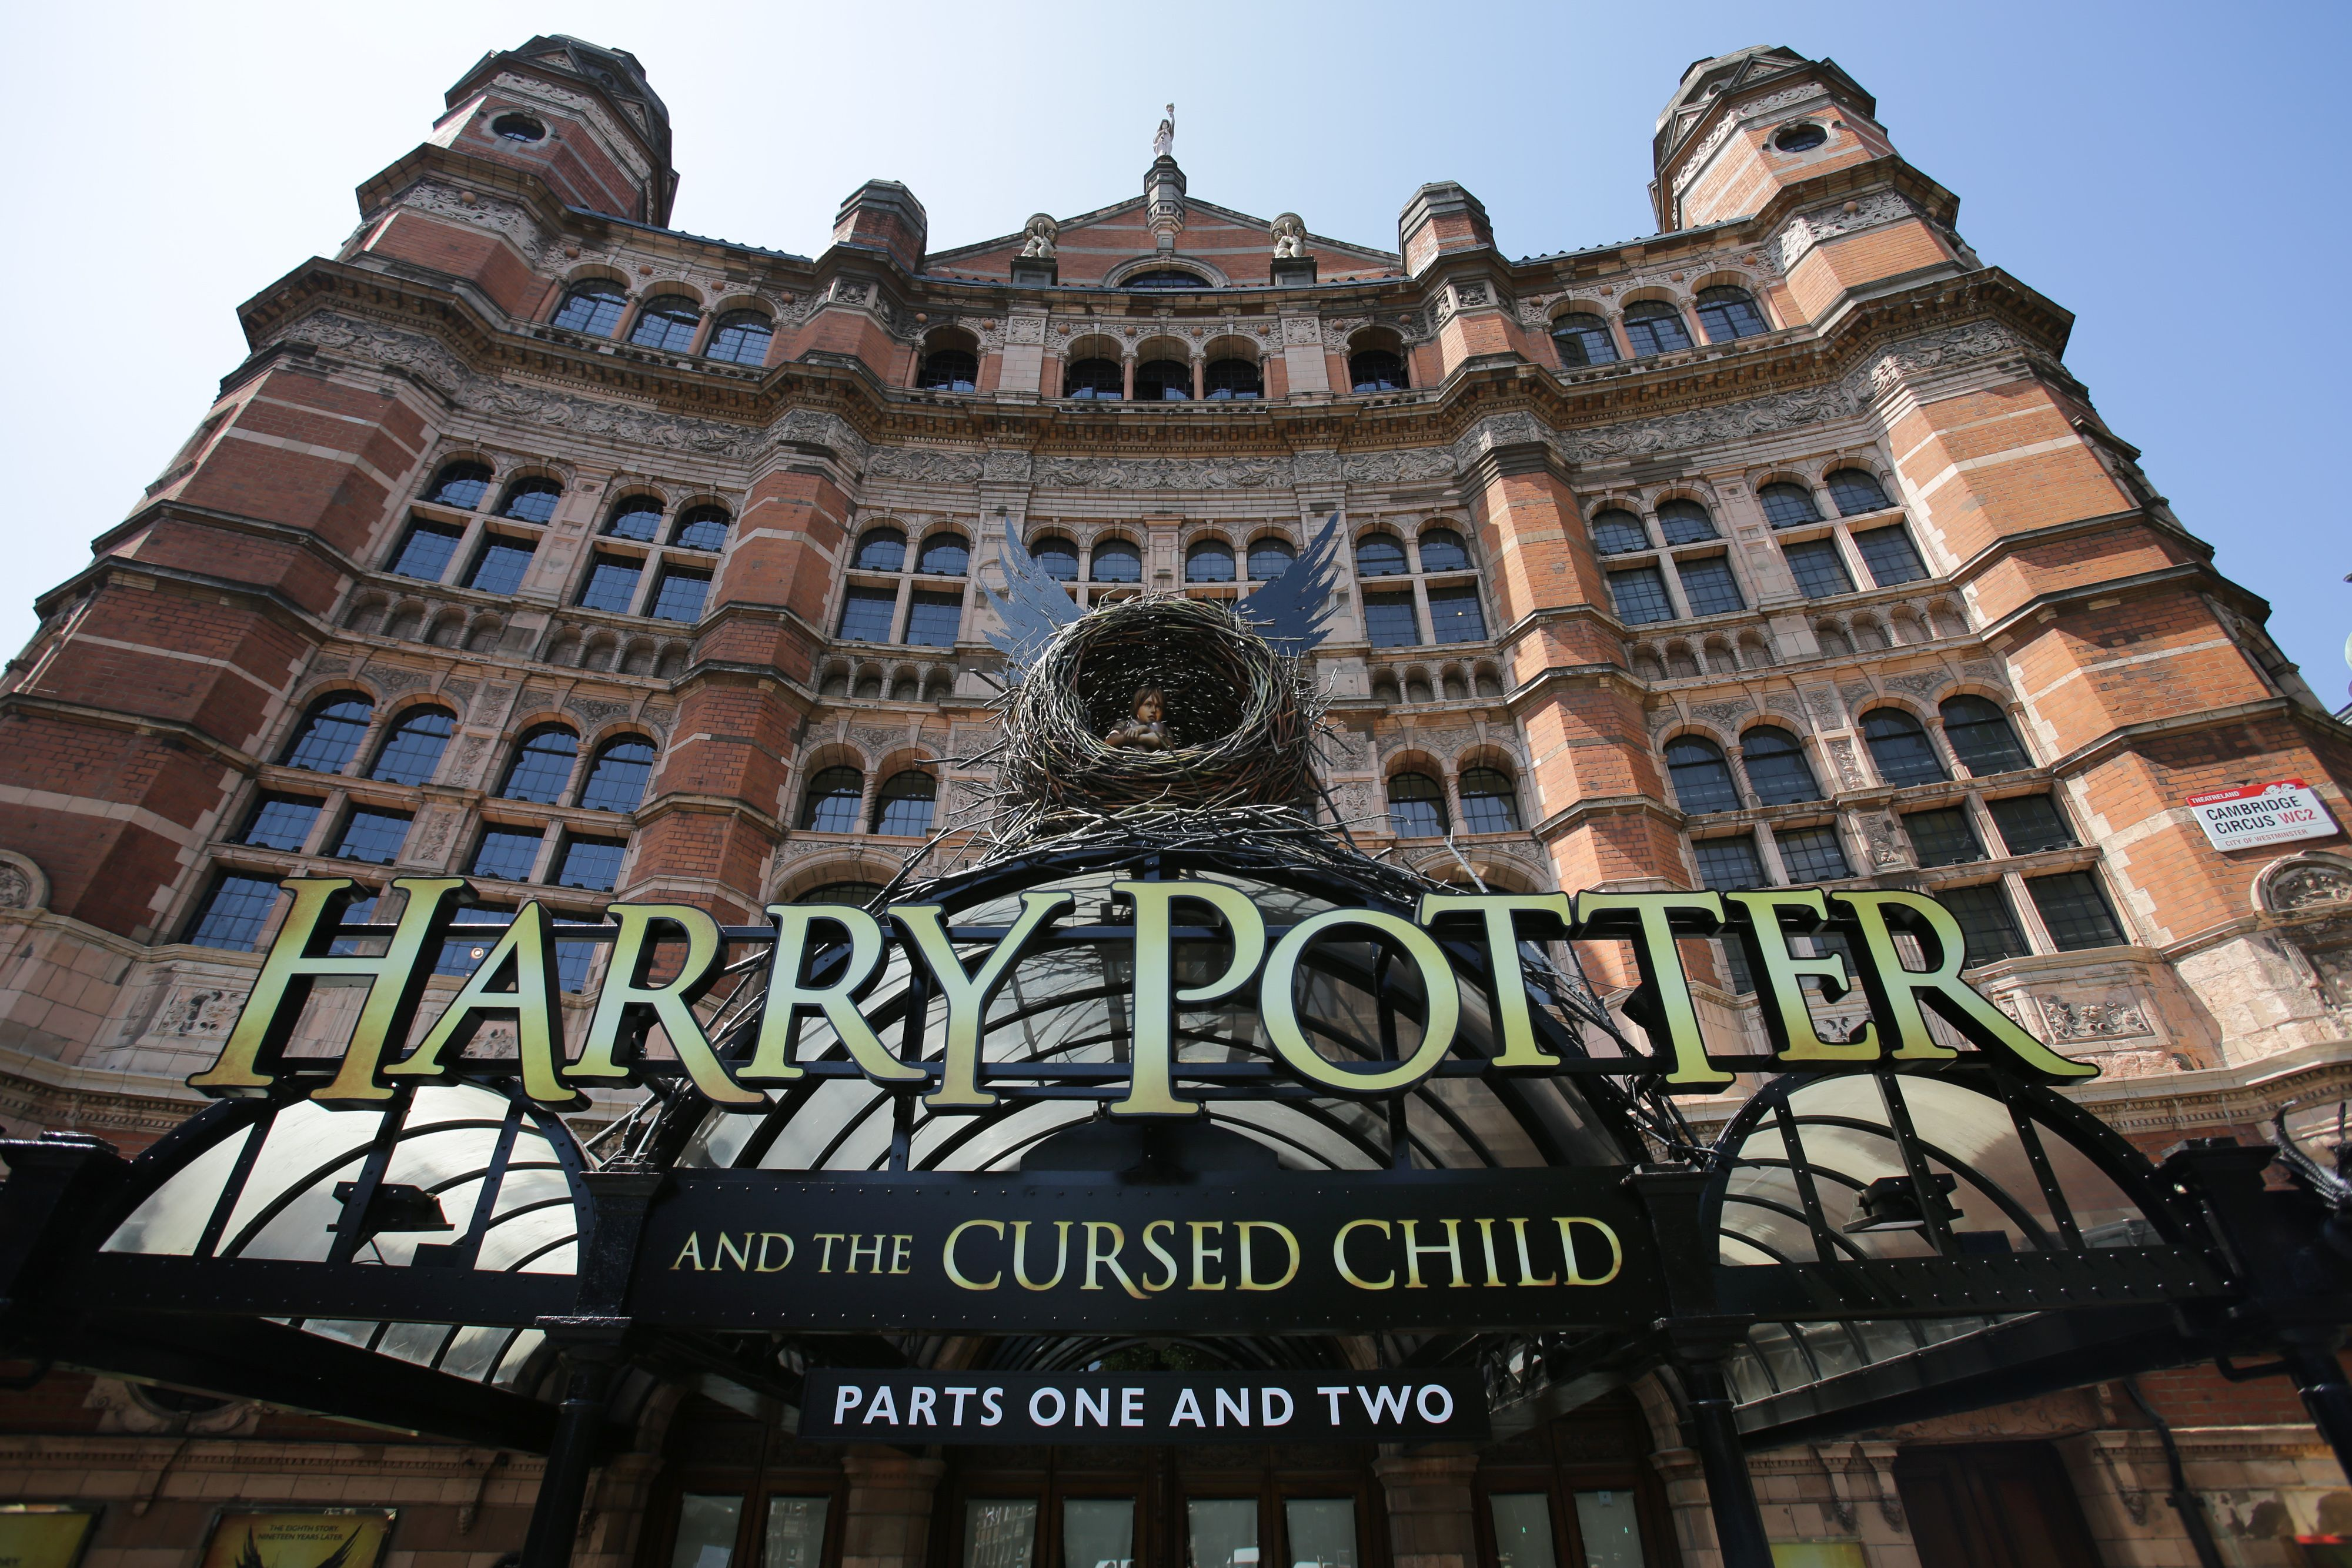 """Get your wands ready, """"Harry Potter and the Cursed Child"""" is coming to Broadway in 2018!"""